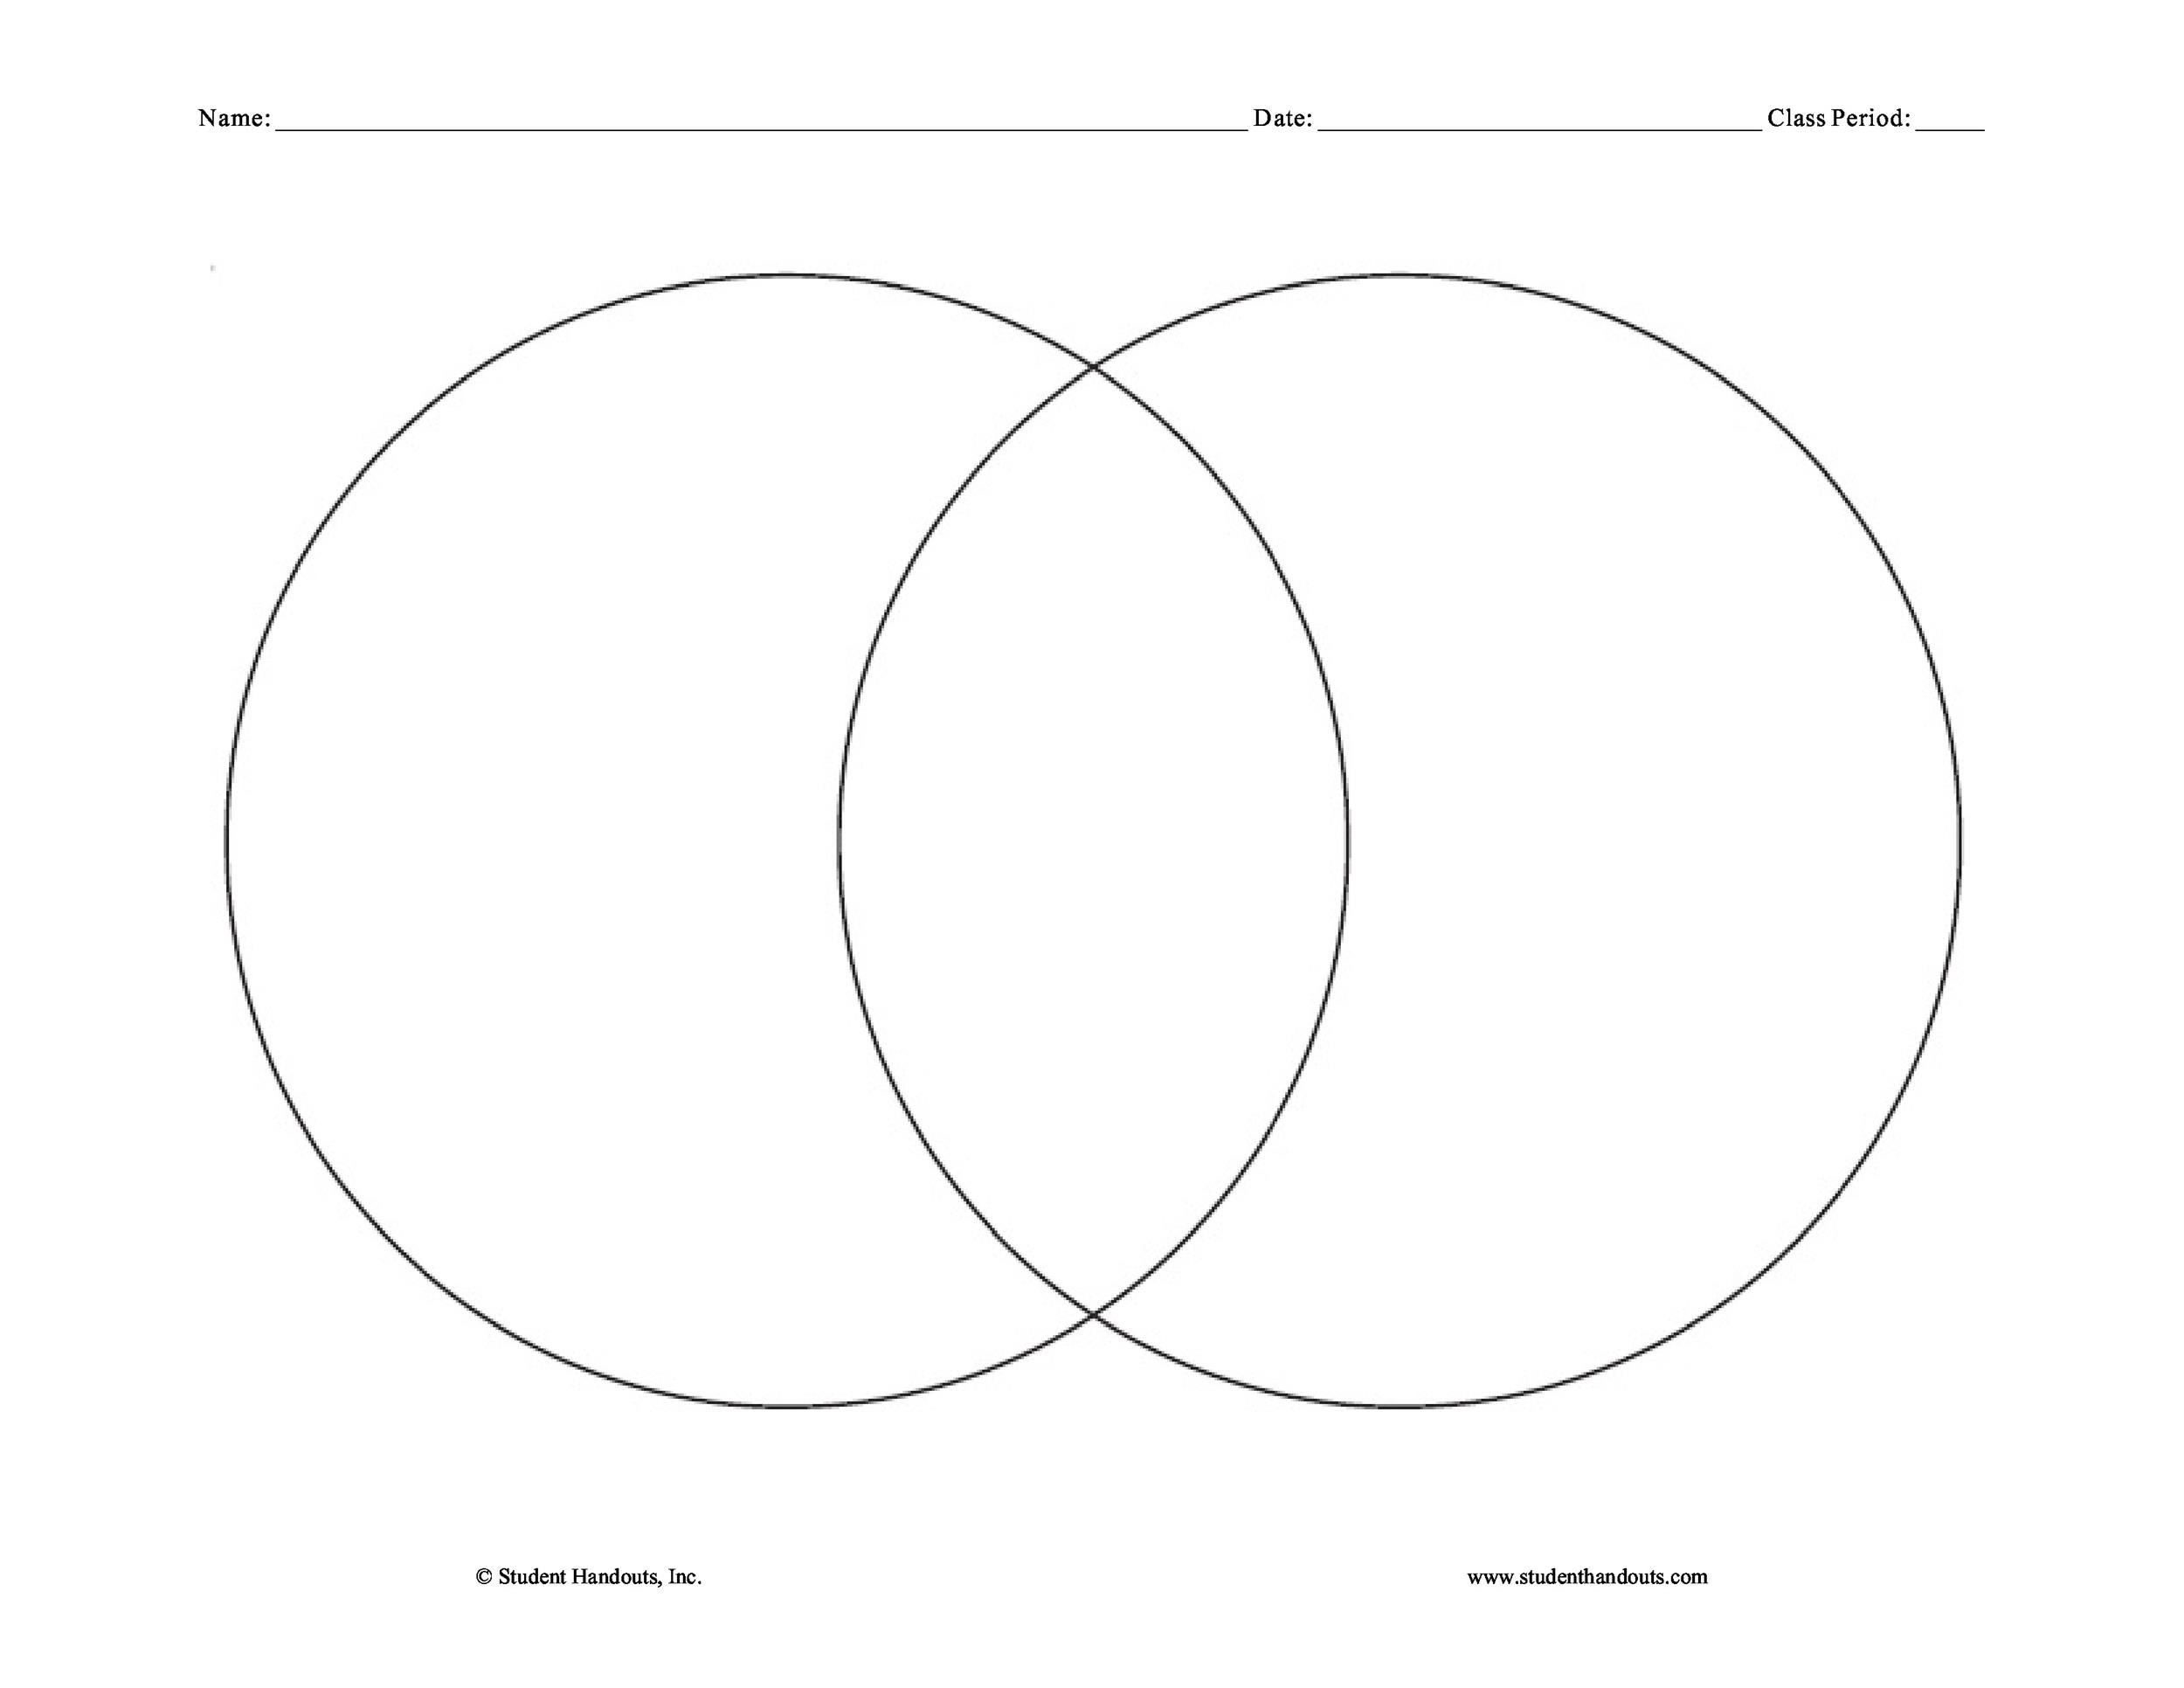 image regarding Printable Venn Diagrams With Lines named 40+ Cost-free Venn Diagram Templates (Phrase, PDF) ᐅ Template Lab